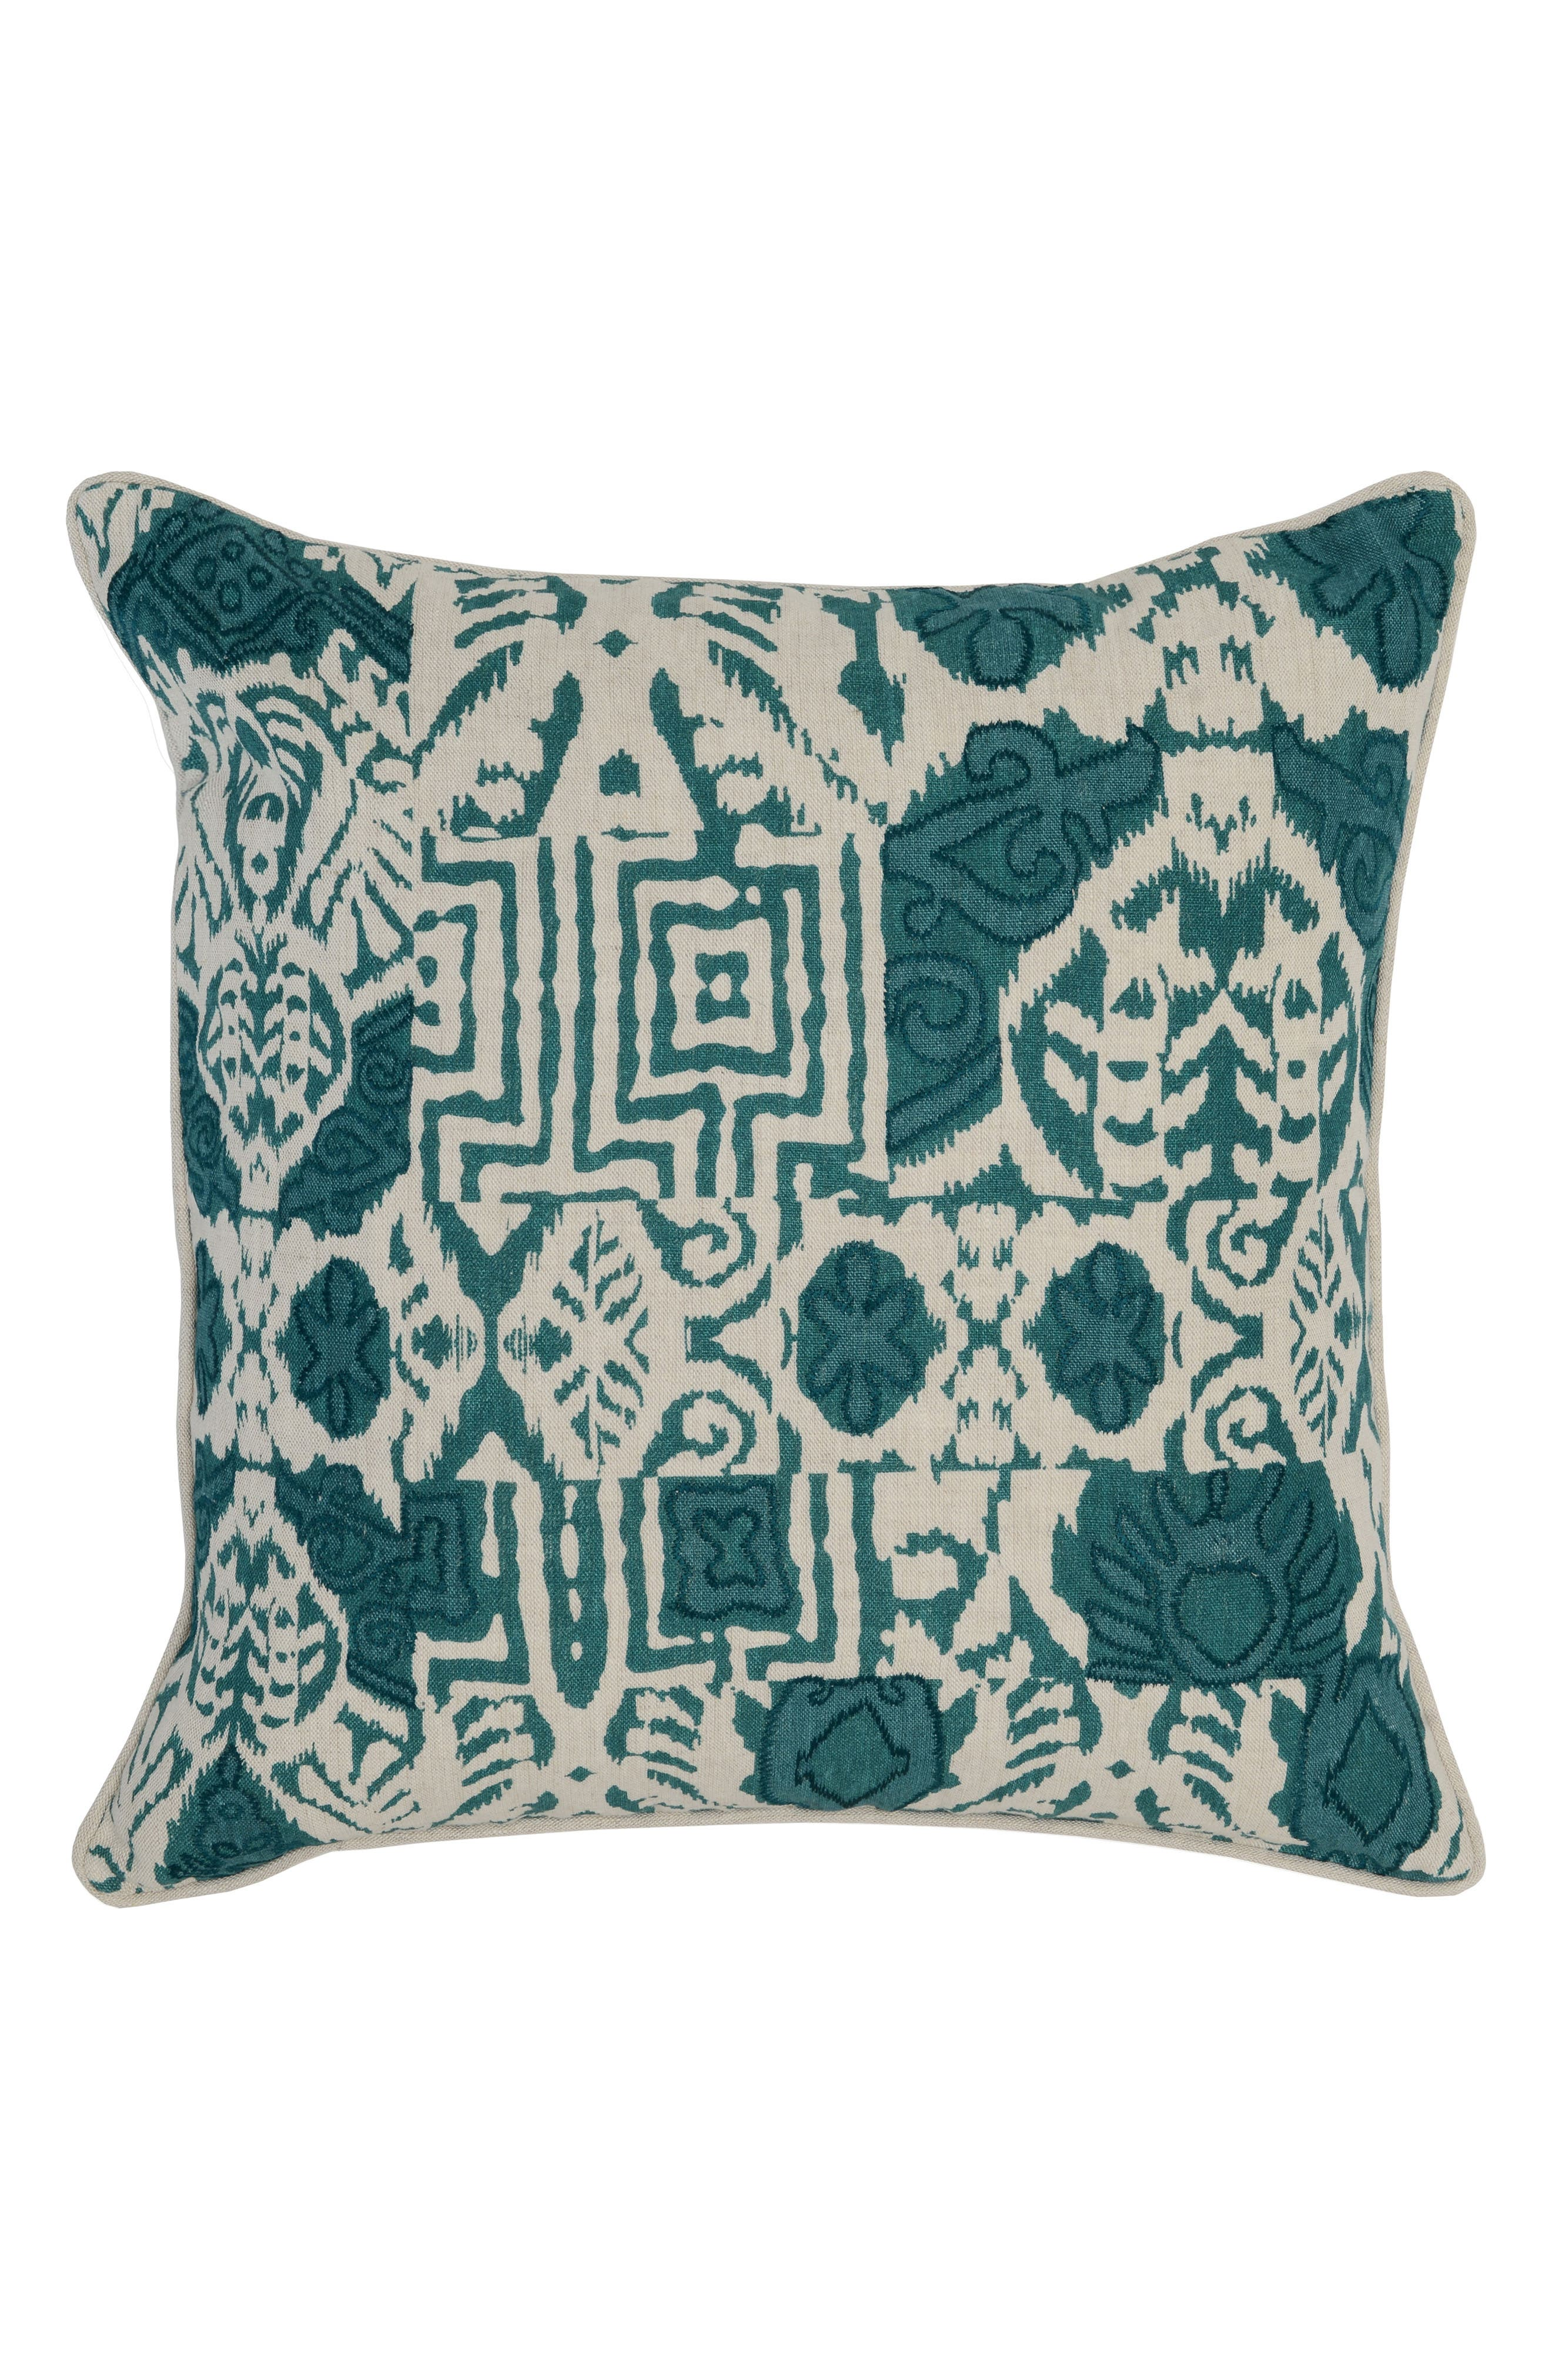 Leon Surf Accent Pillow,                         Main,                         color, Teal/ Ivory